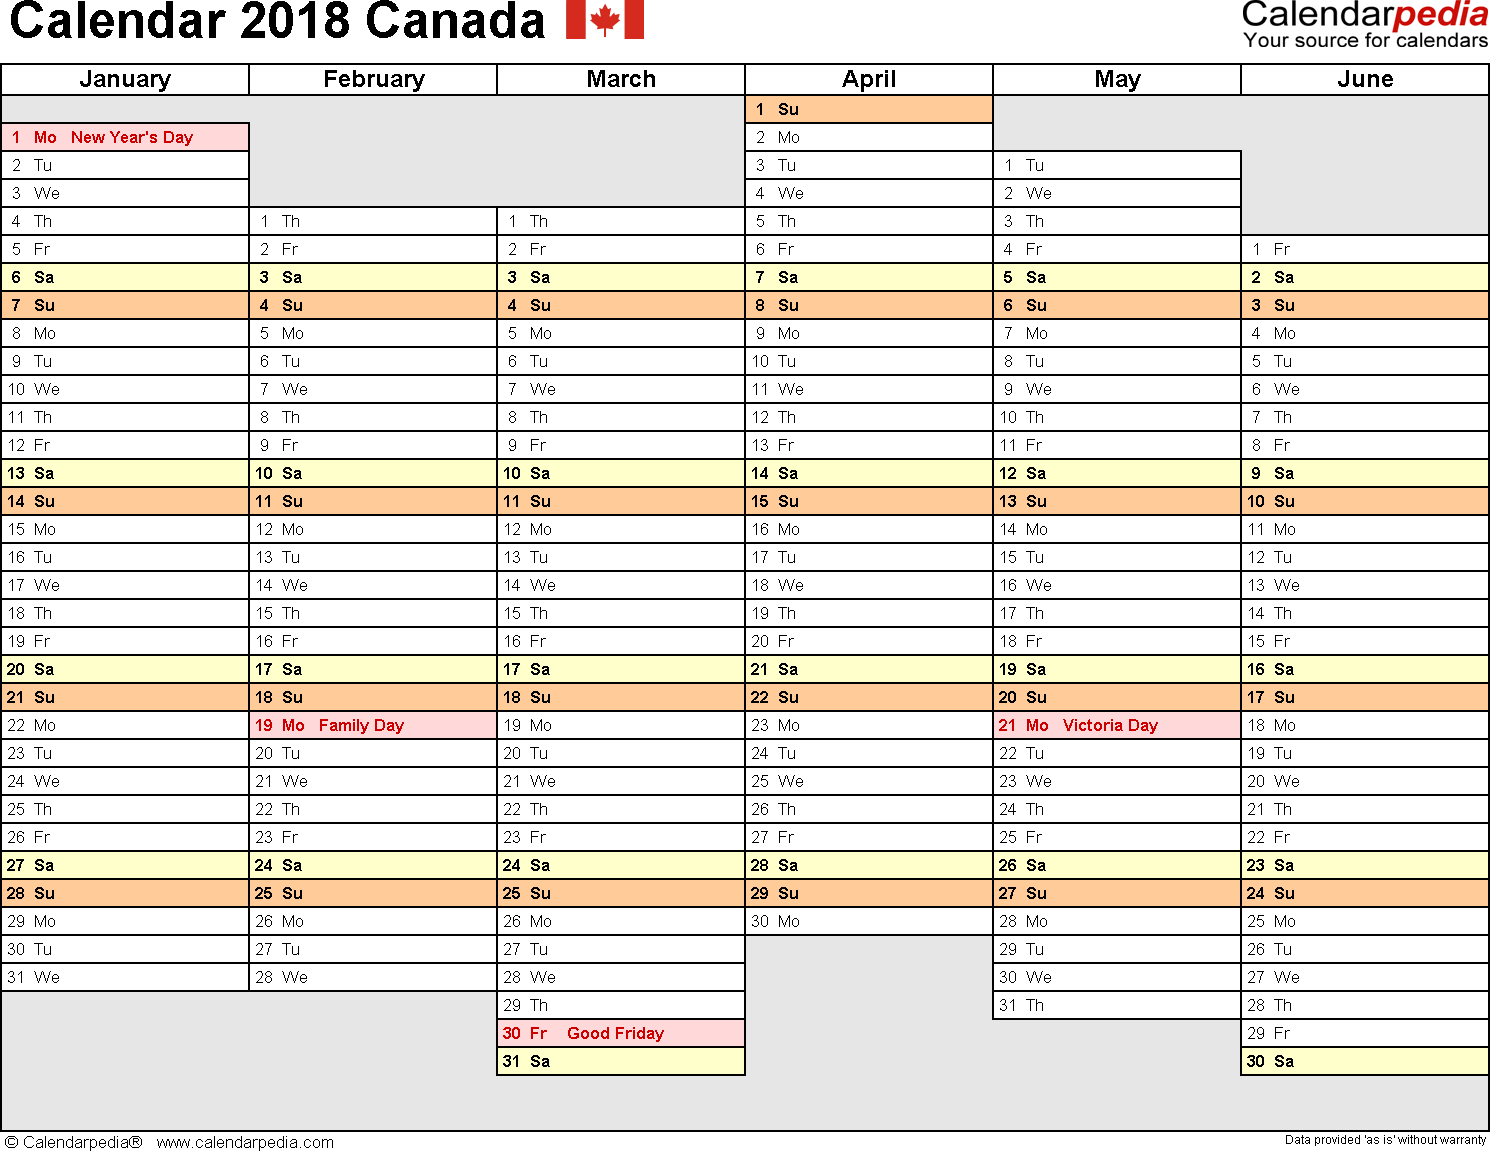 Template 4: 2018 Calendar Canada for Word, months horizontally, 2 pages, days of the week in line/linear, landscape orientation